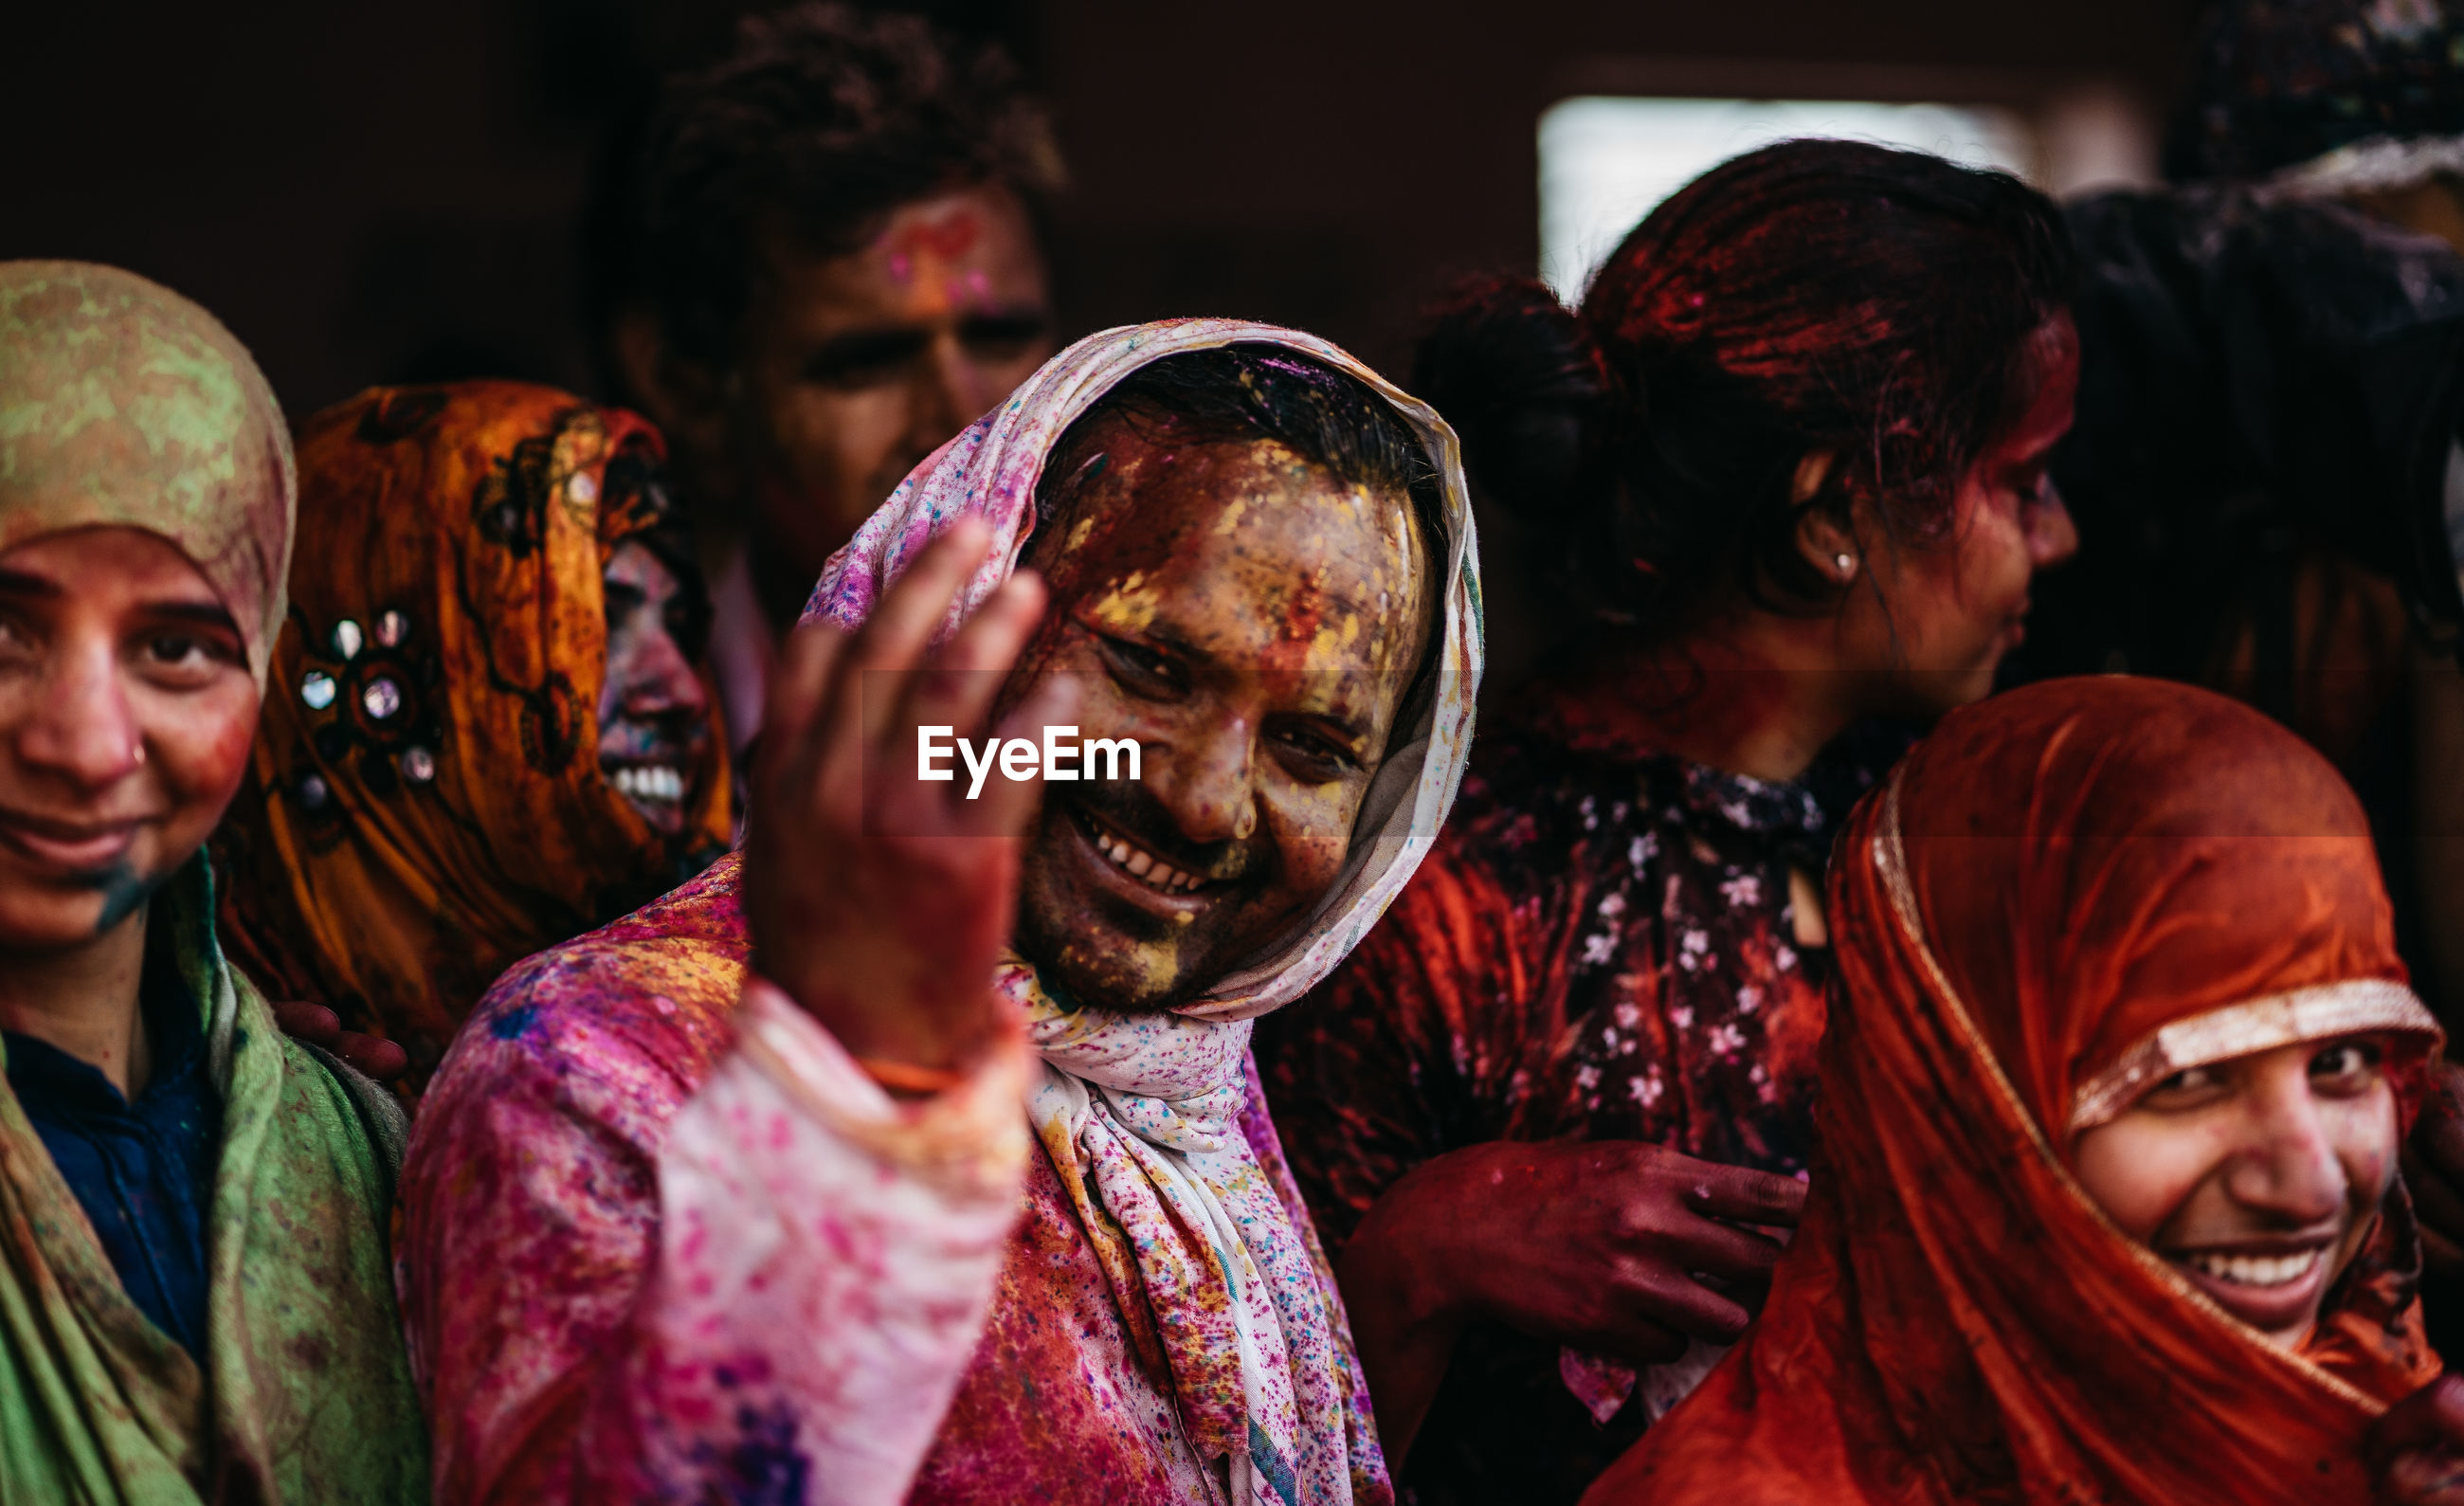 GROUP OF PEOPLE AT TRADITIONAL CLOTHING